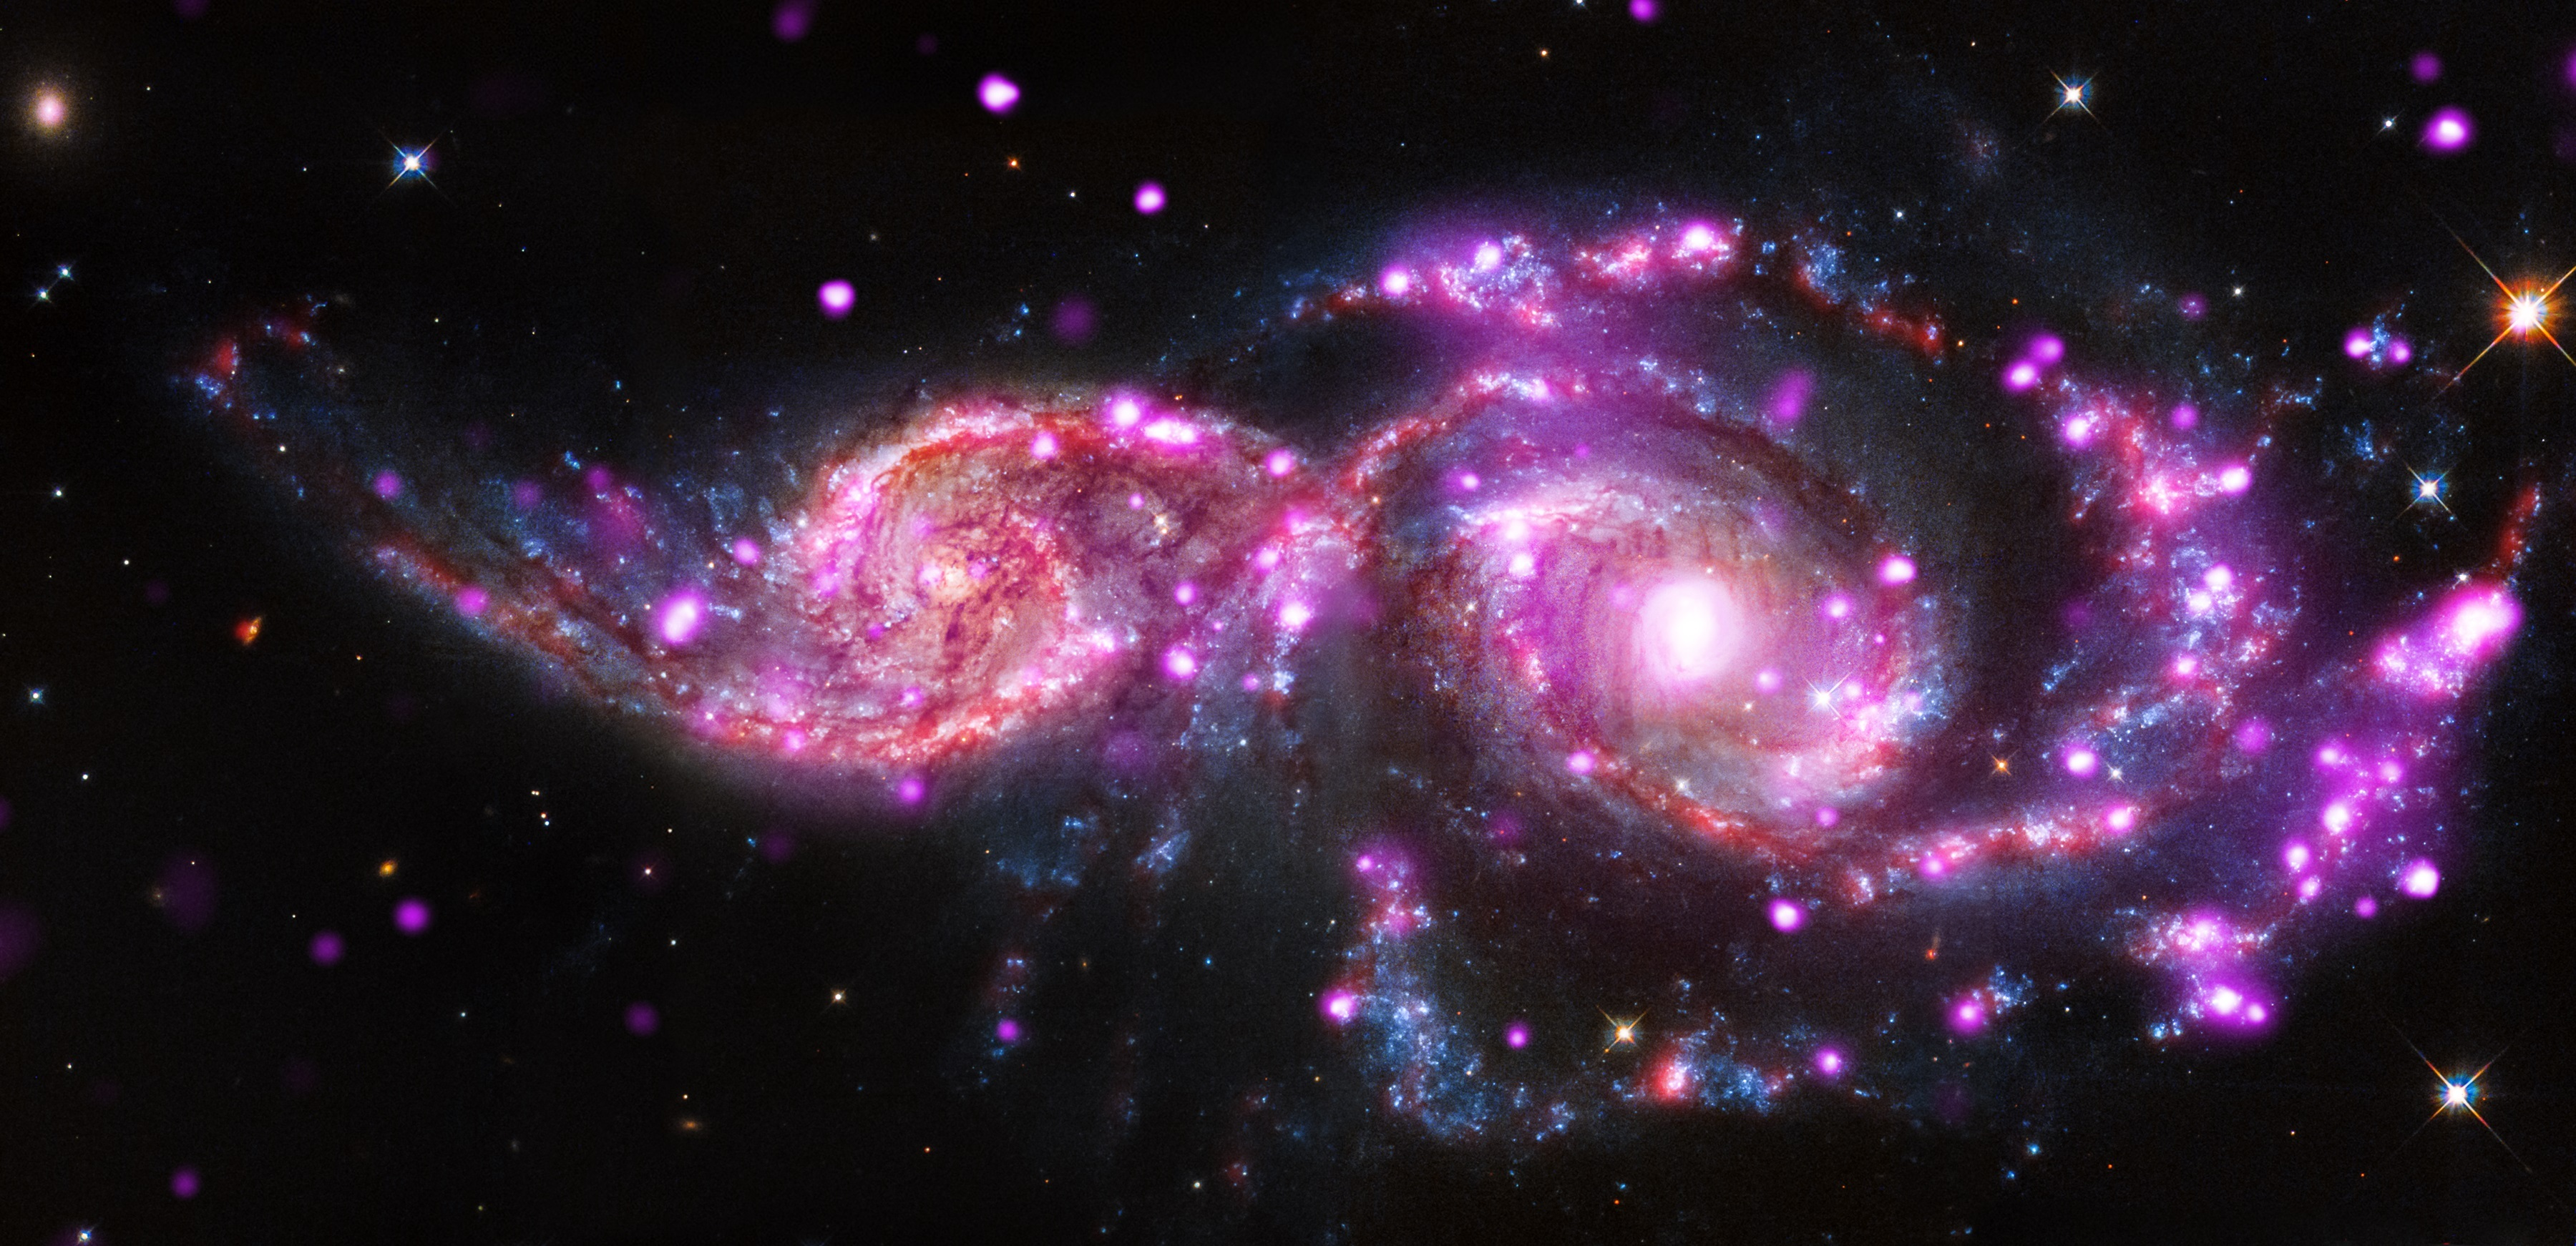 Clipart of colliding spiral galaxies free image.